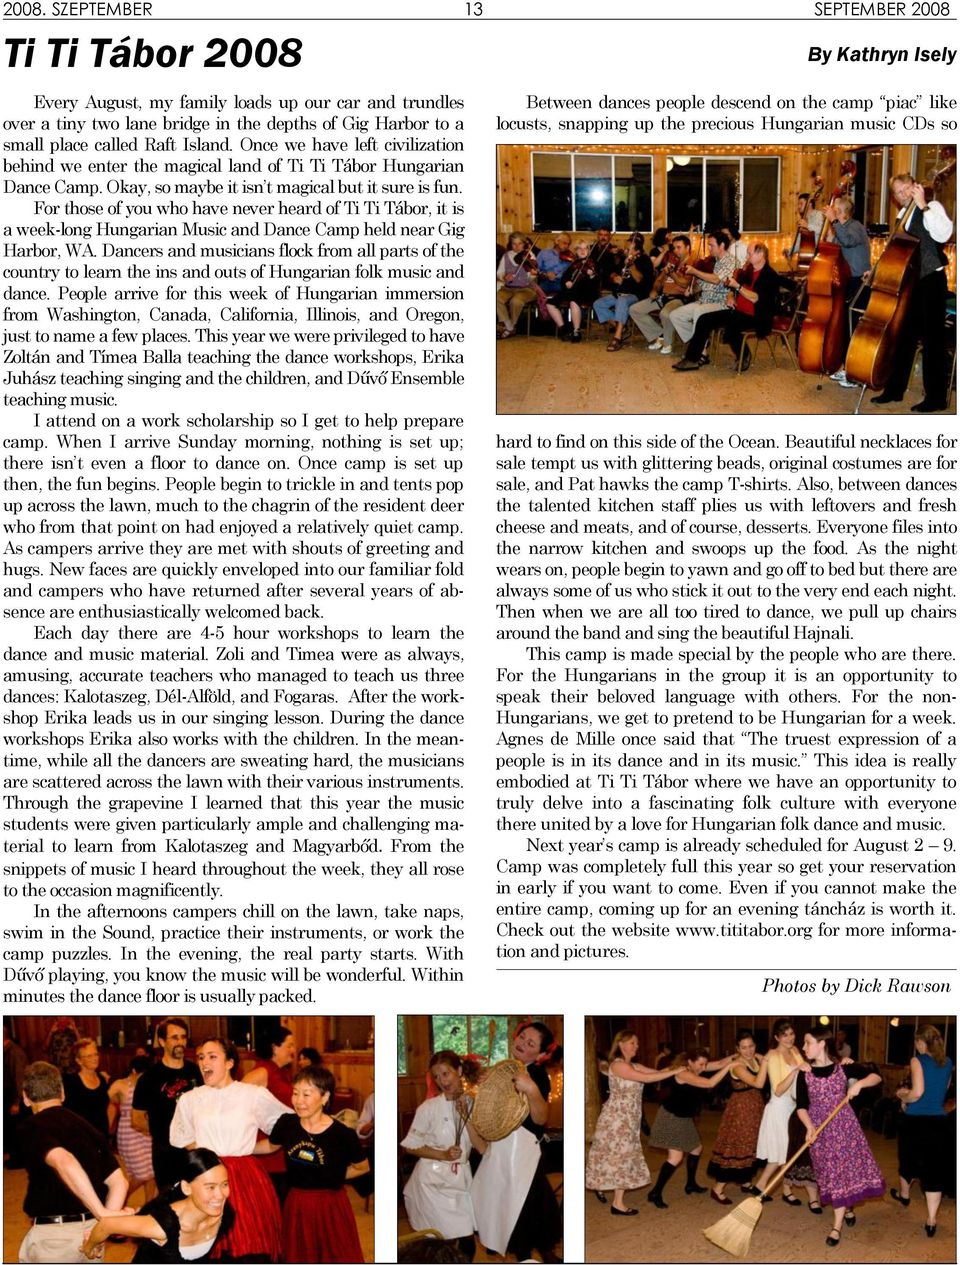 For those of you who have never heard of Ti Ti Tábor, it is a week-long Hungarian Music and Dance Camp held near Gig Harbor, WA.